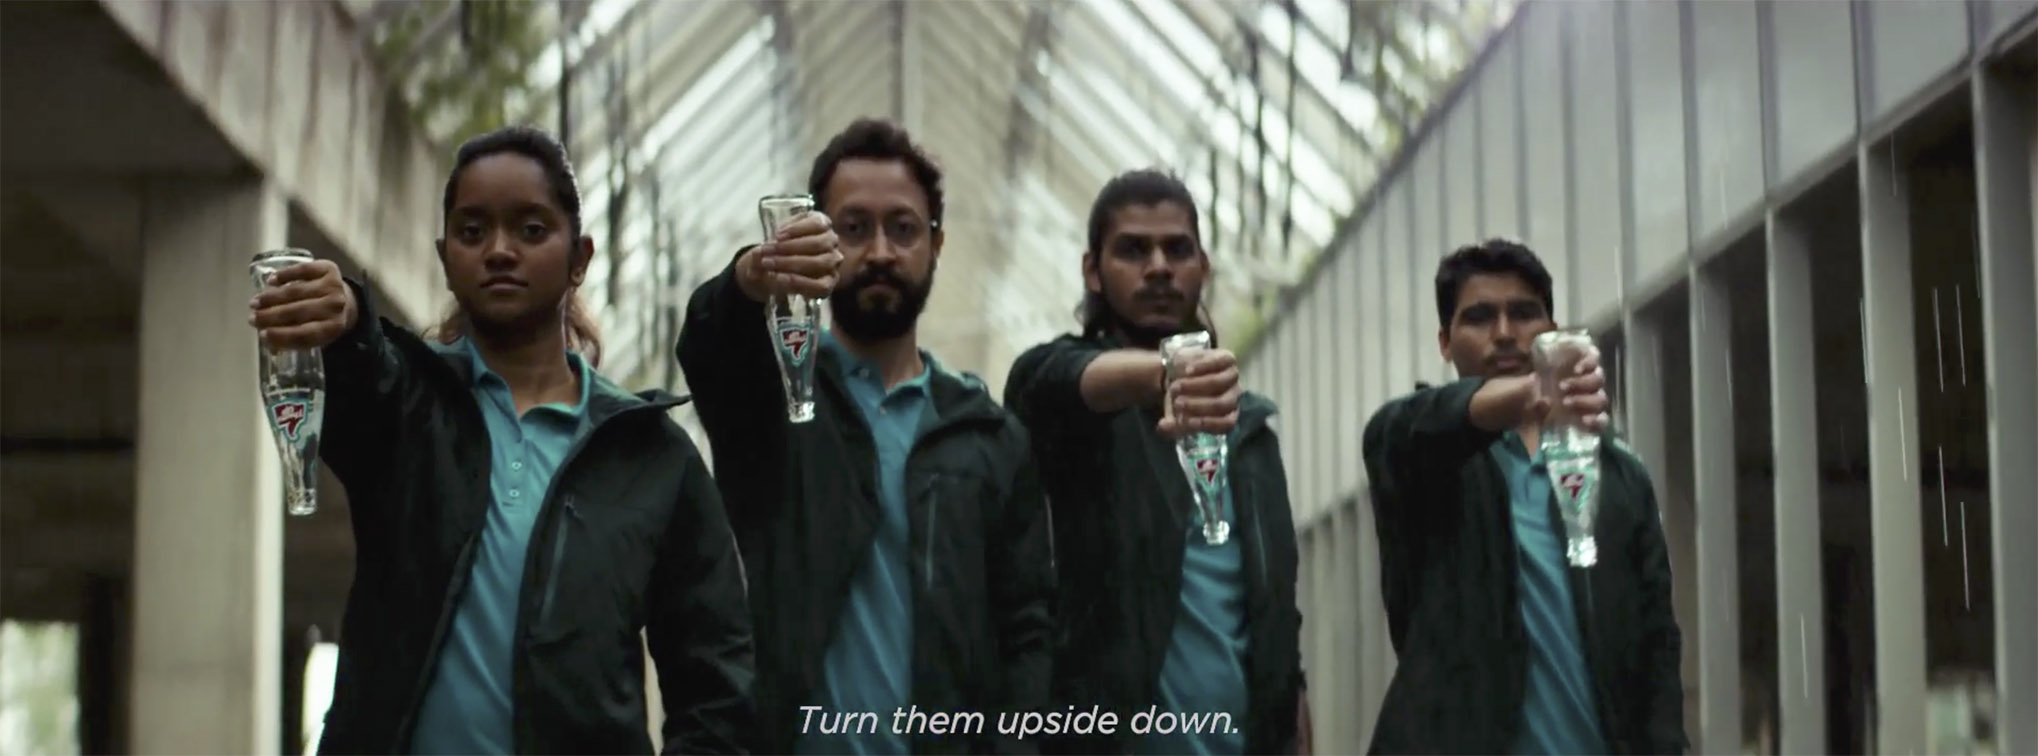 Ogilvy India and Coca-Cola brand Thums Up celebrate the real heroes of the Olympic Games